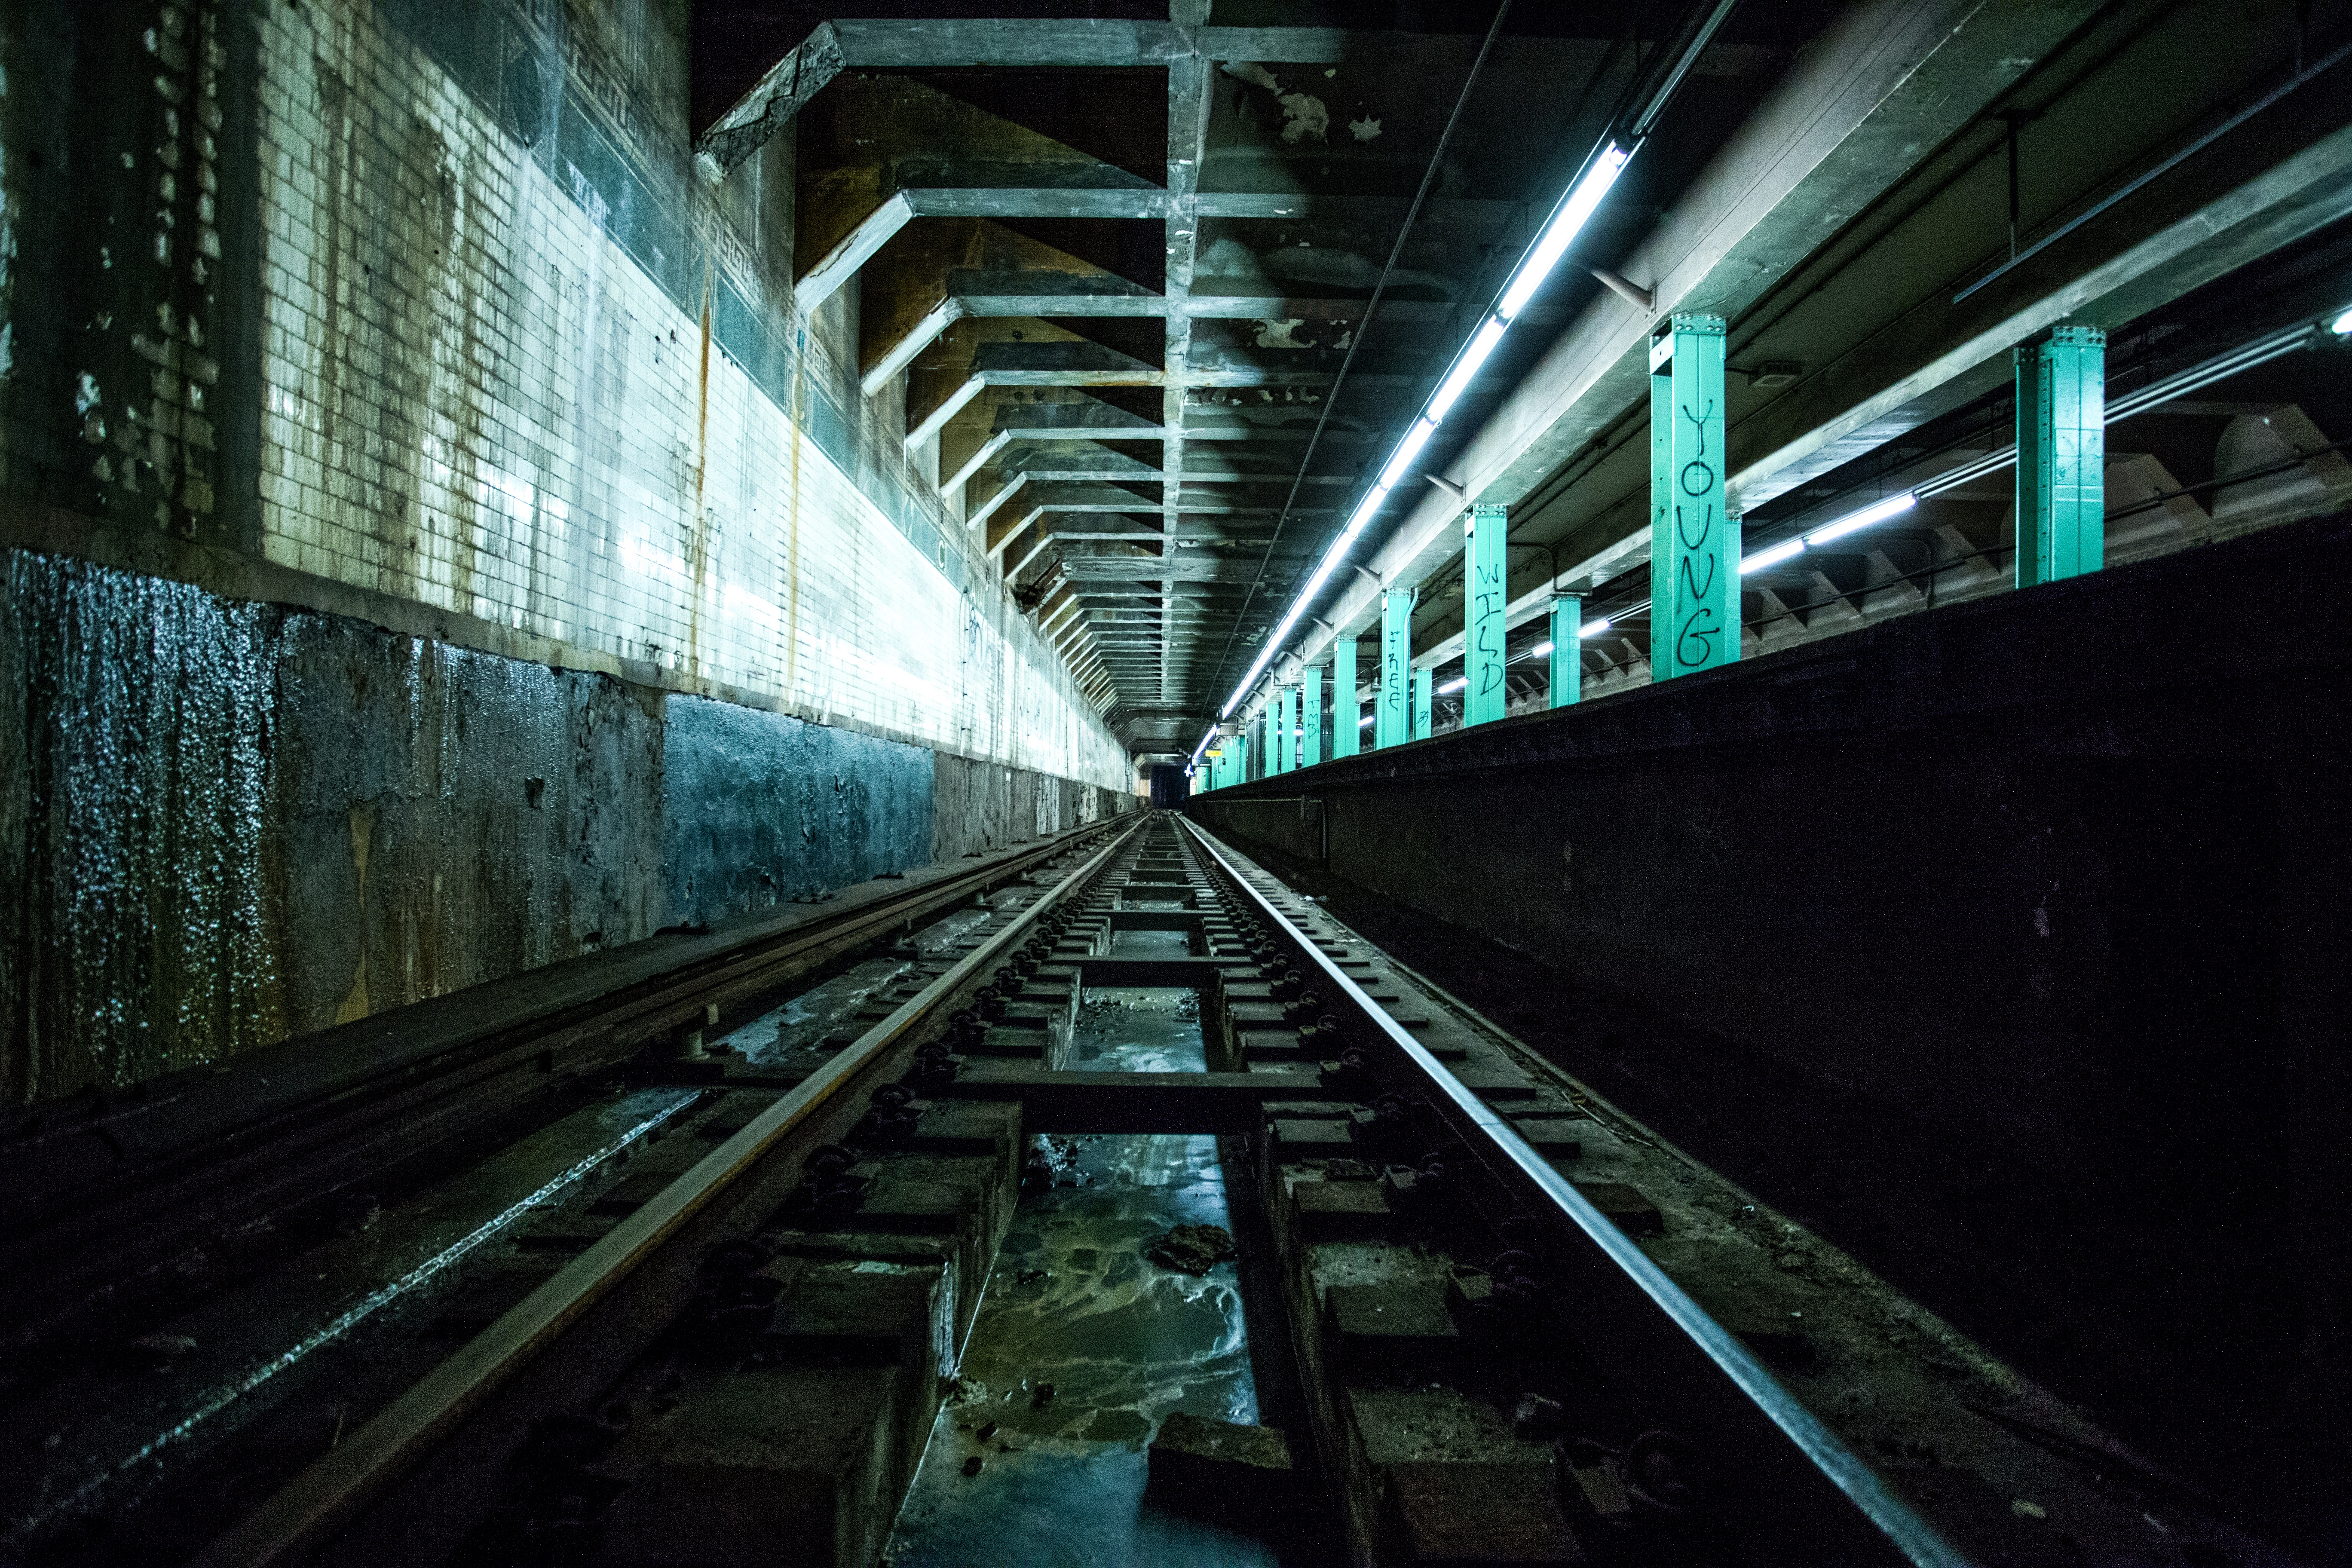 Closeup of subway tracks, entering a station, The Initiation